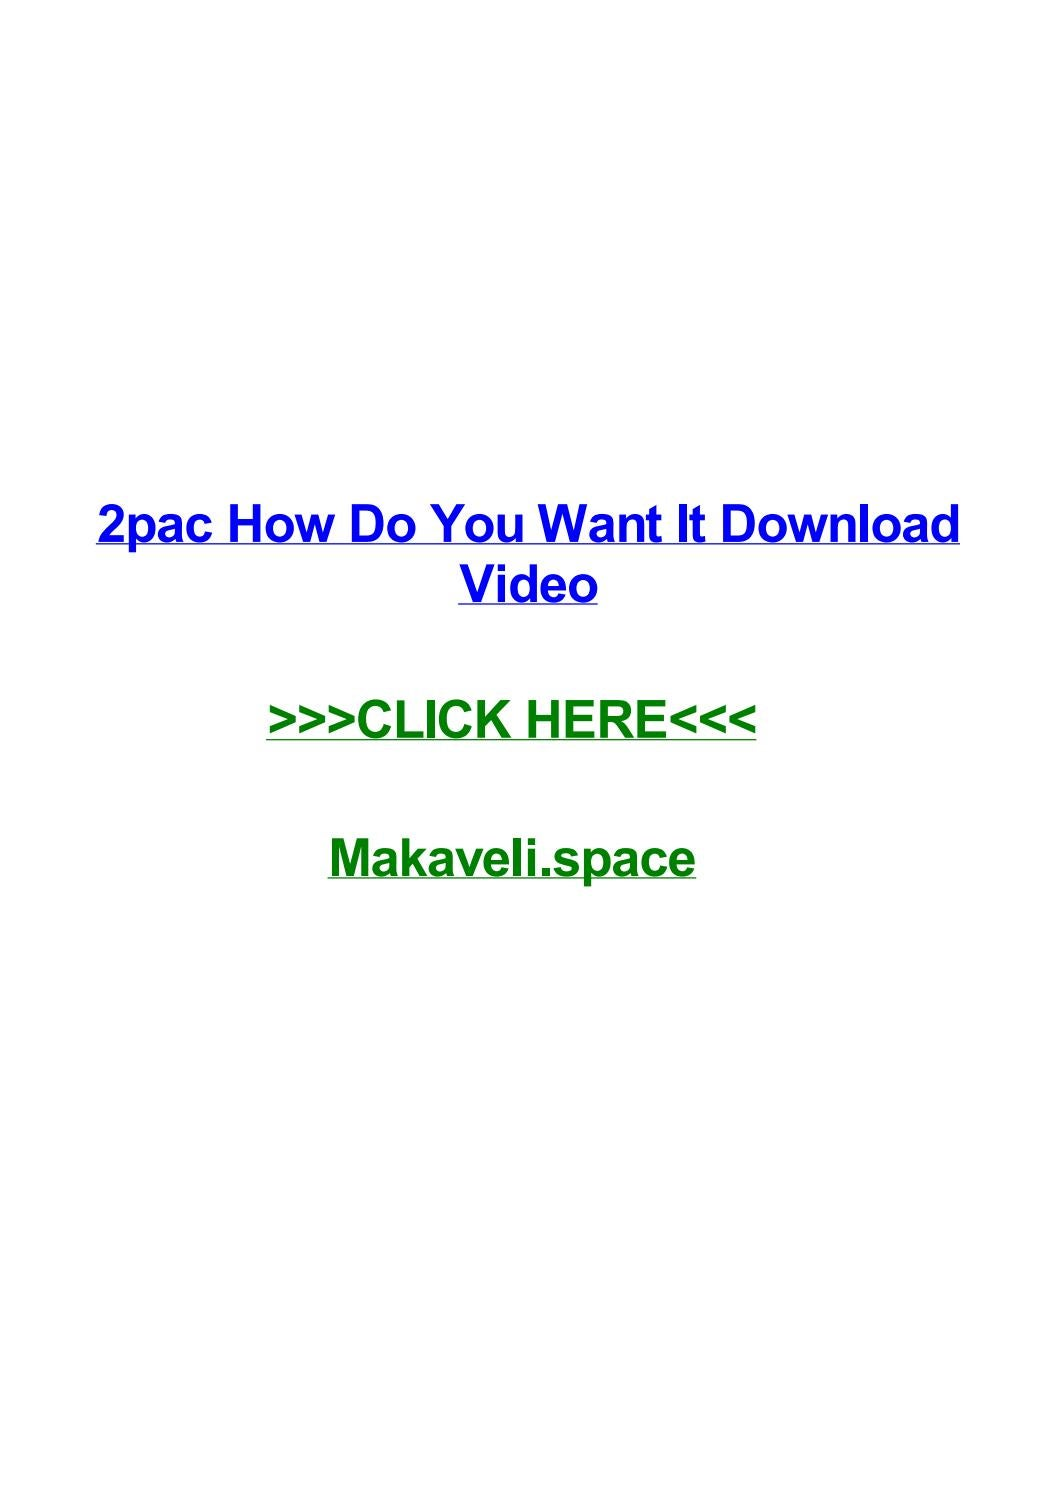 2pac How Do You Want It Download Video By Claudiagznq Issuu